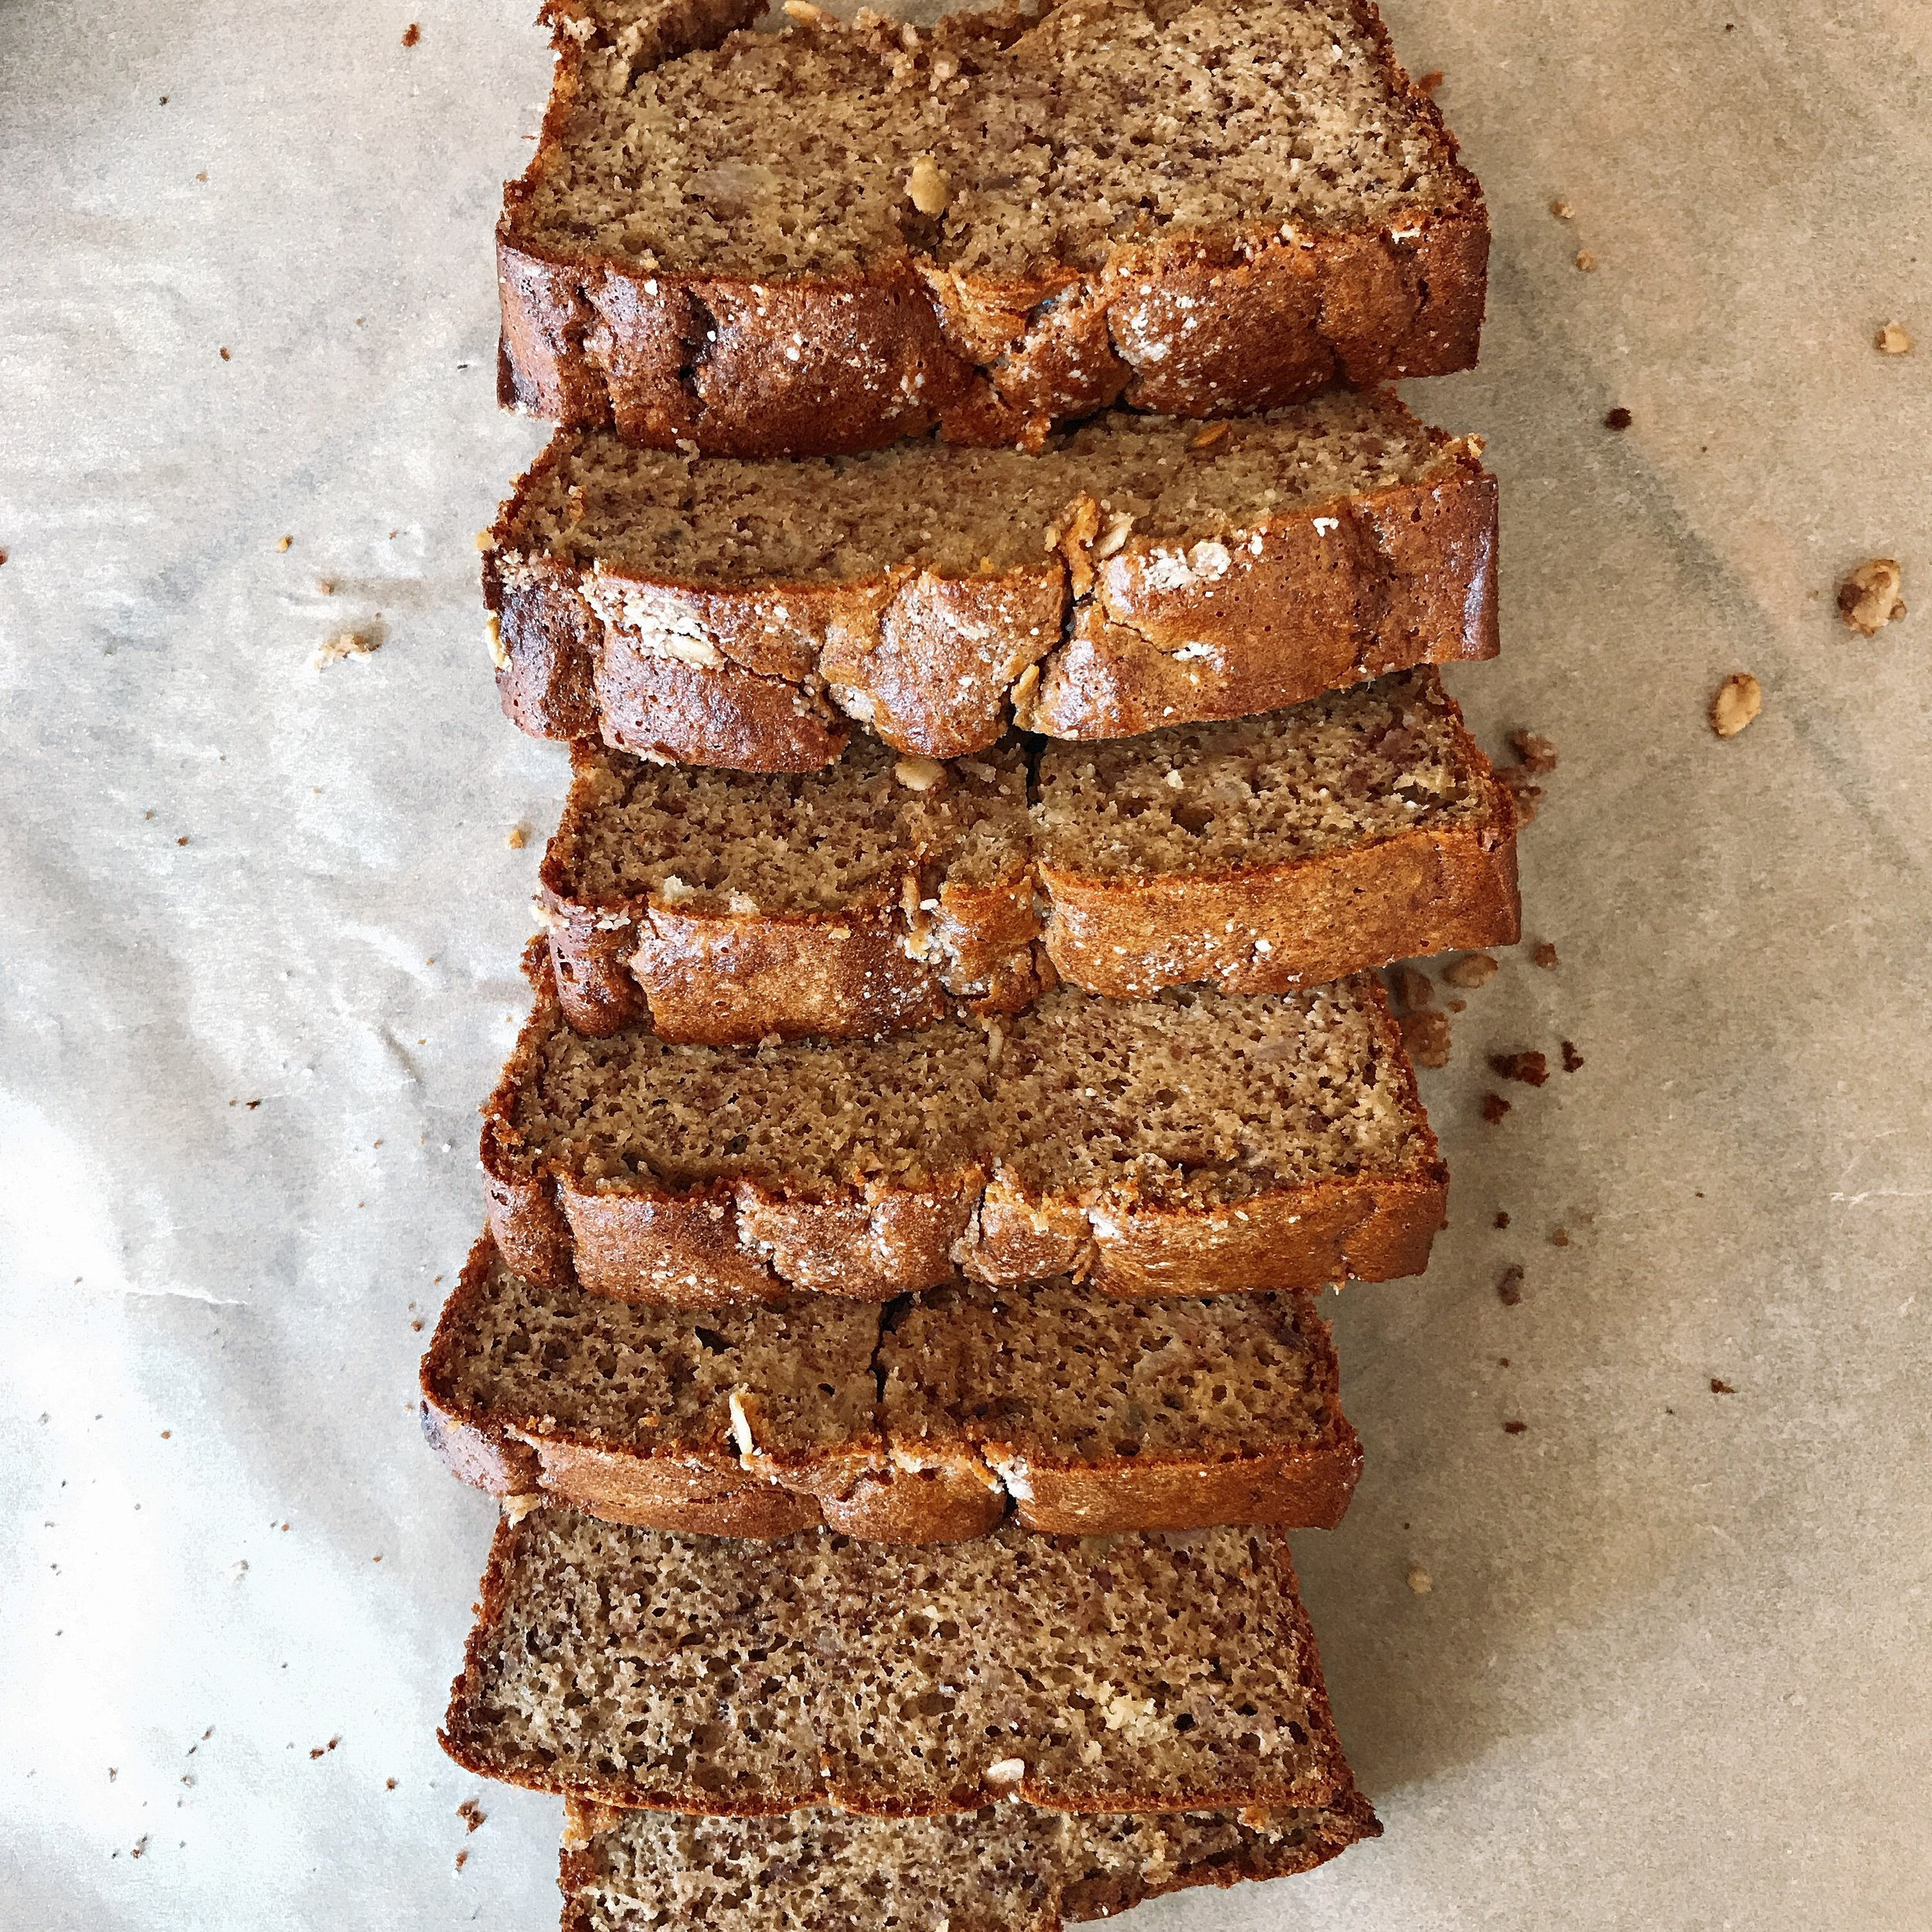 Cinnamon Coffee Cake Banana Bread that is completely dairy free, gluten free and delicious! It is light with a cinnamon sugar oat streusel with every bite!